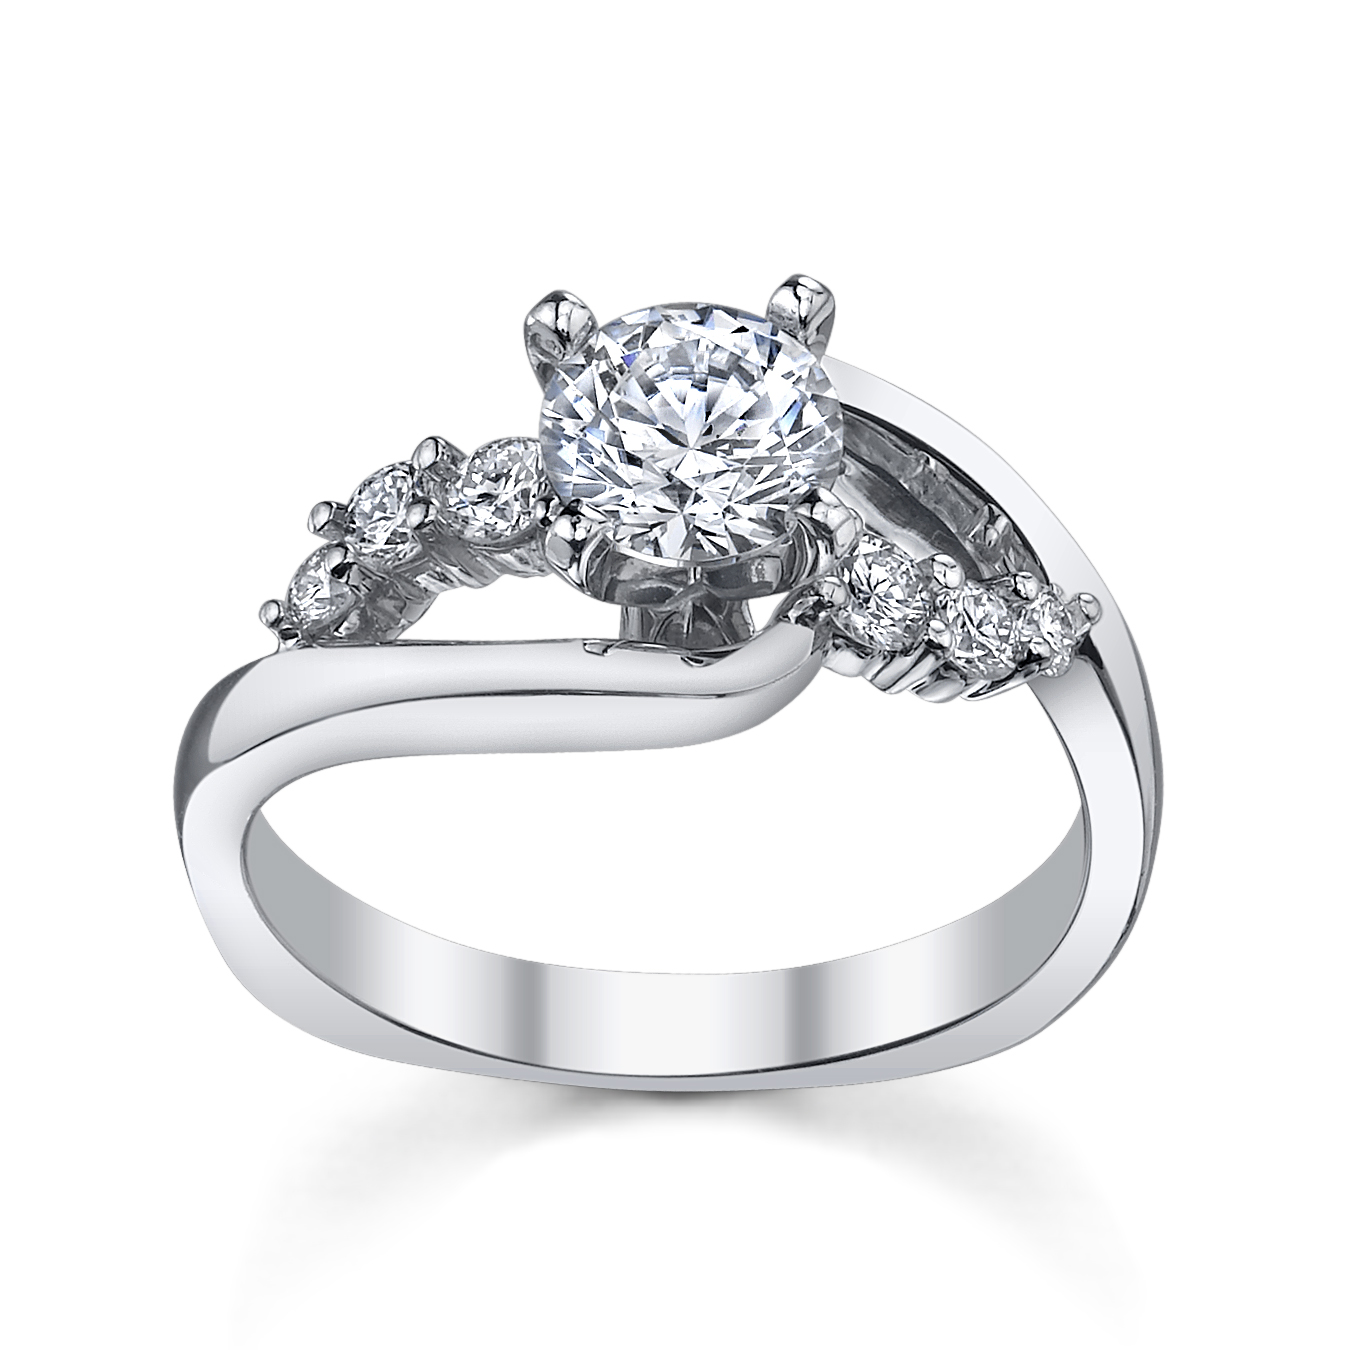 Modern Engagement Ring From Robbins Brothers (sku0382364)